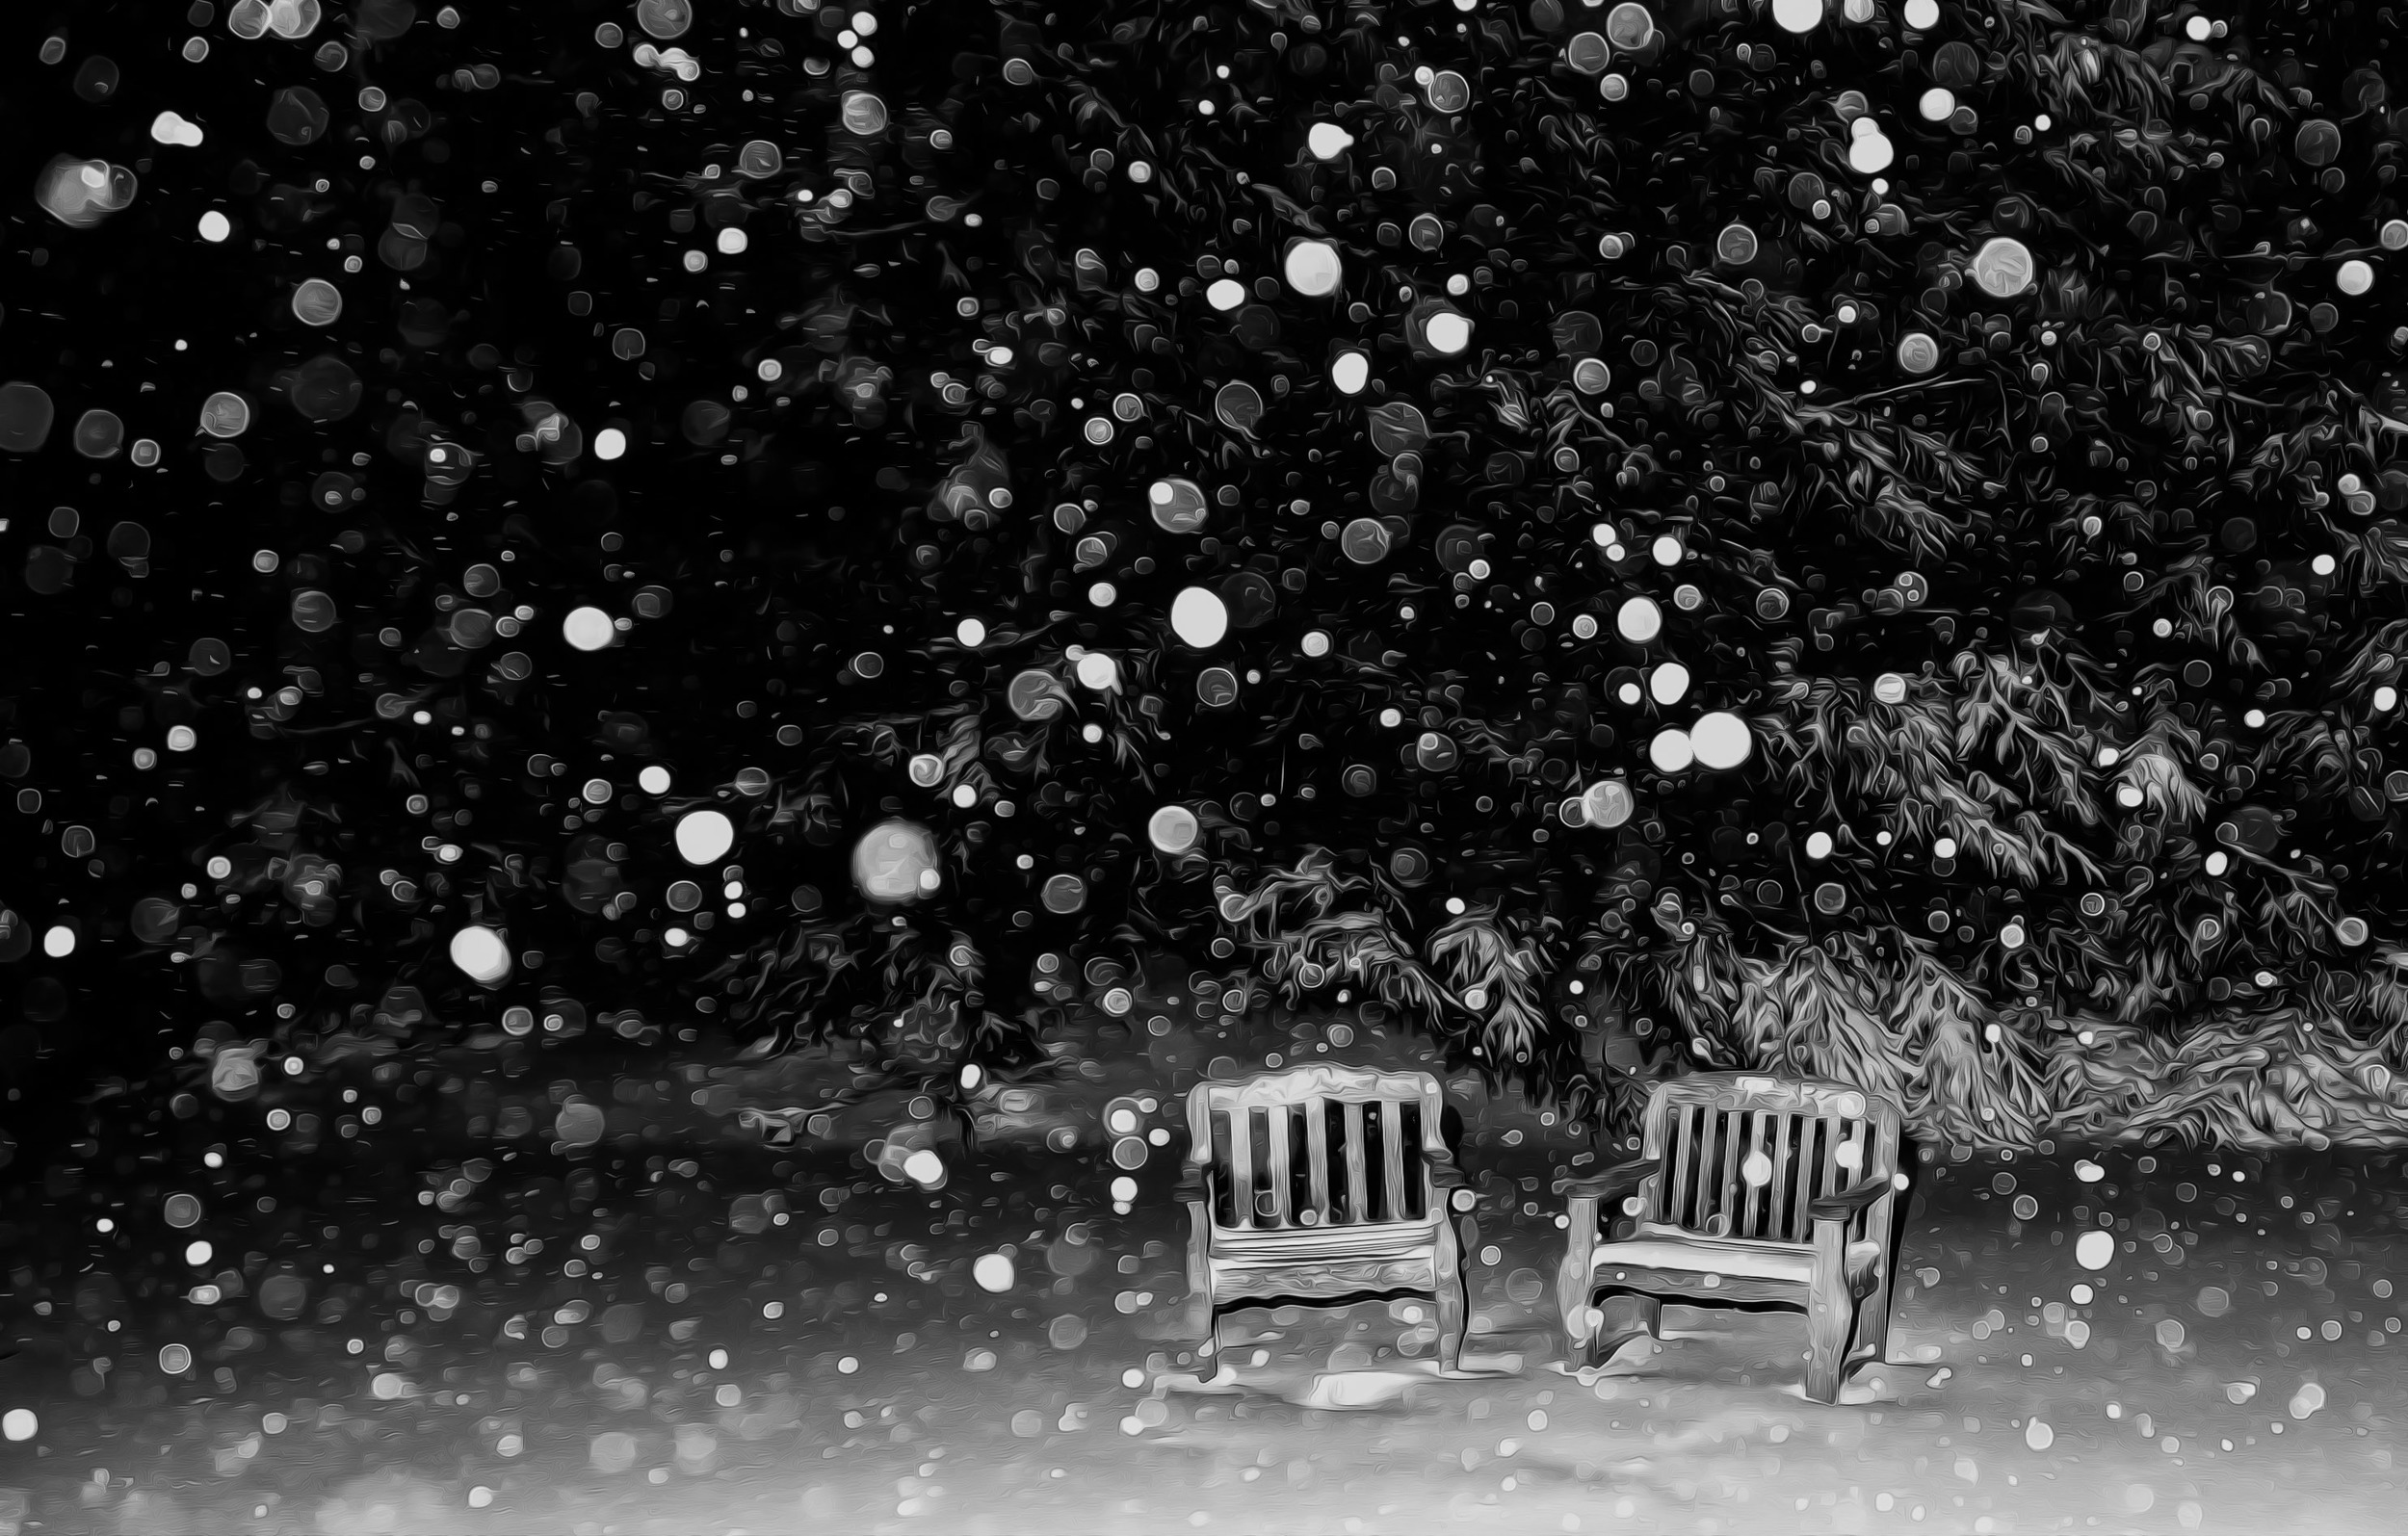 Winter Chairs 1129